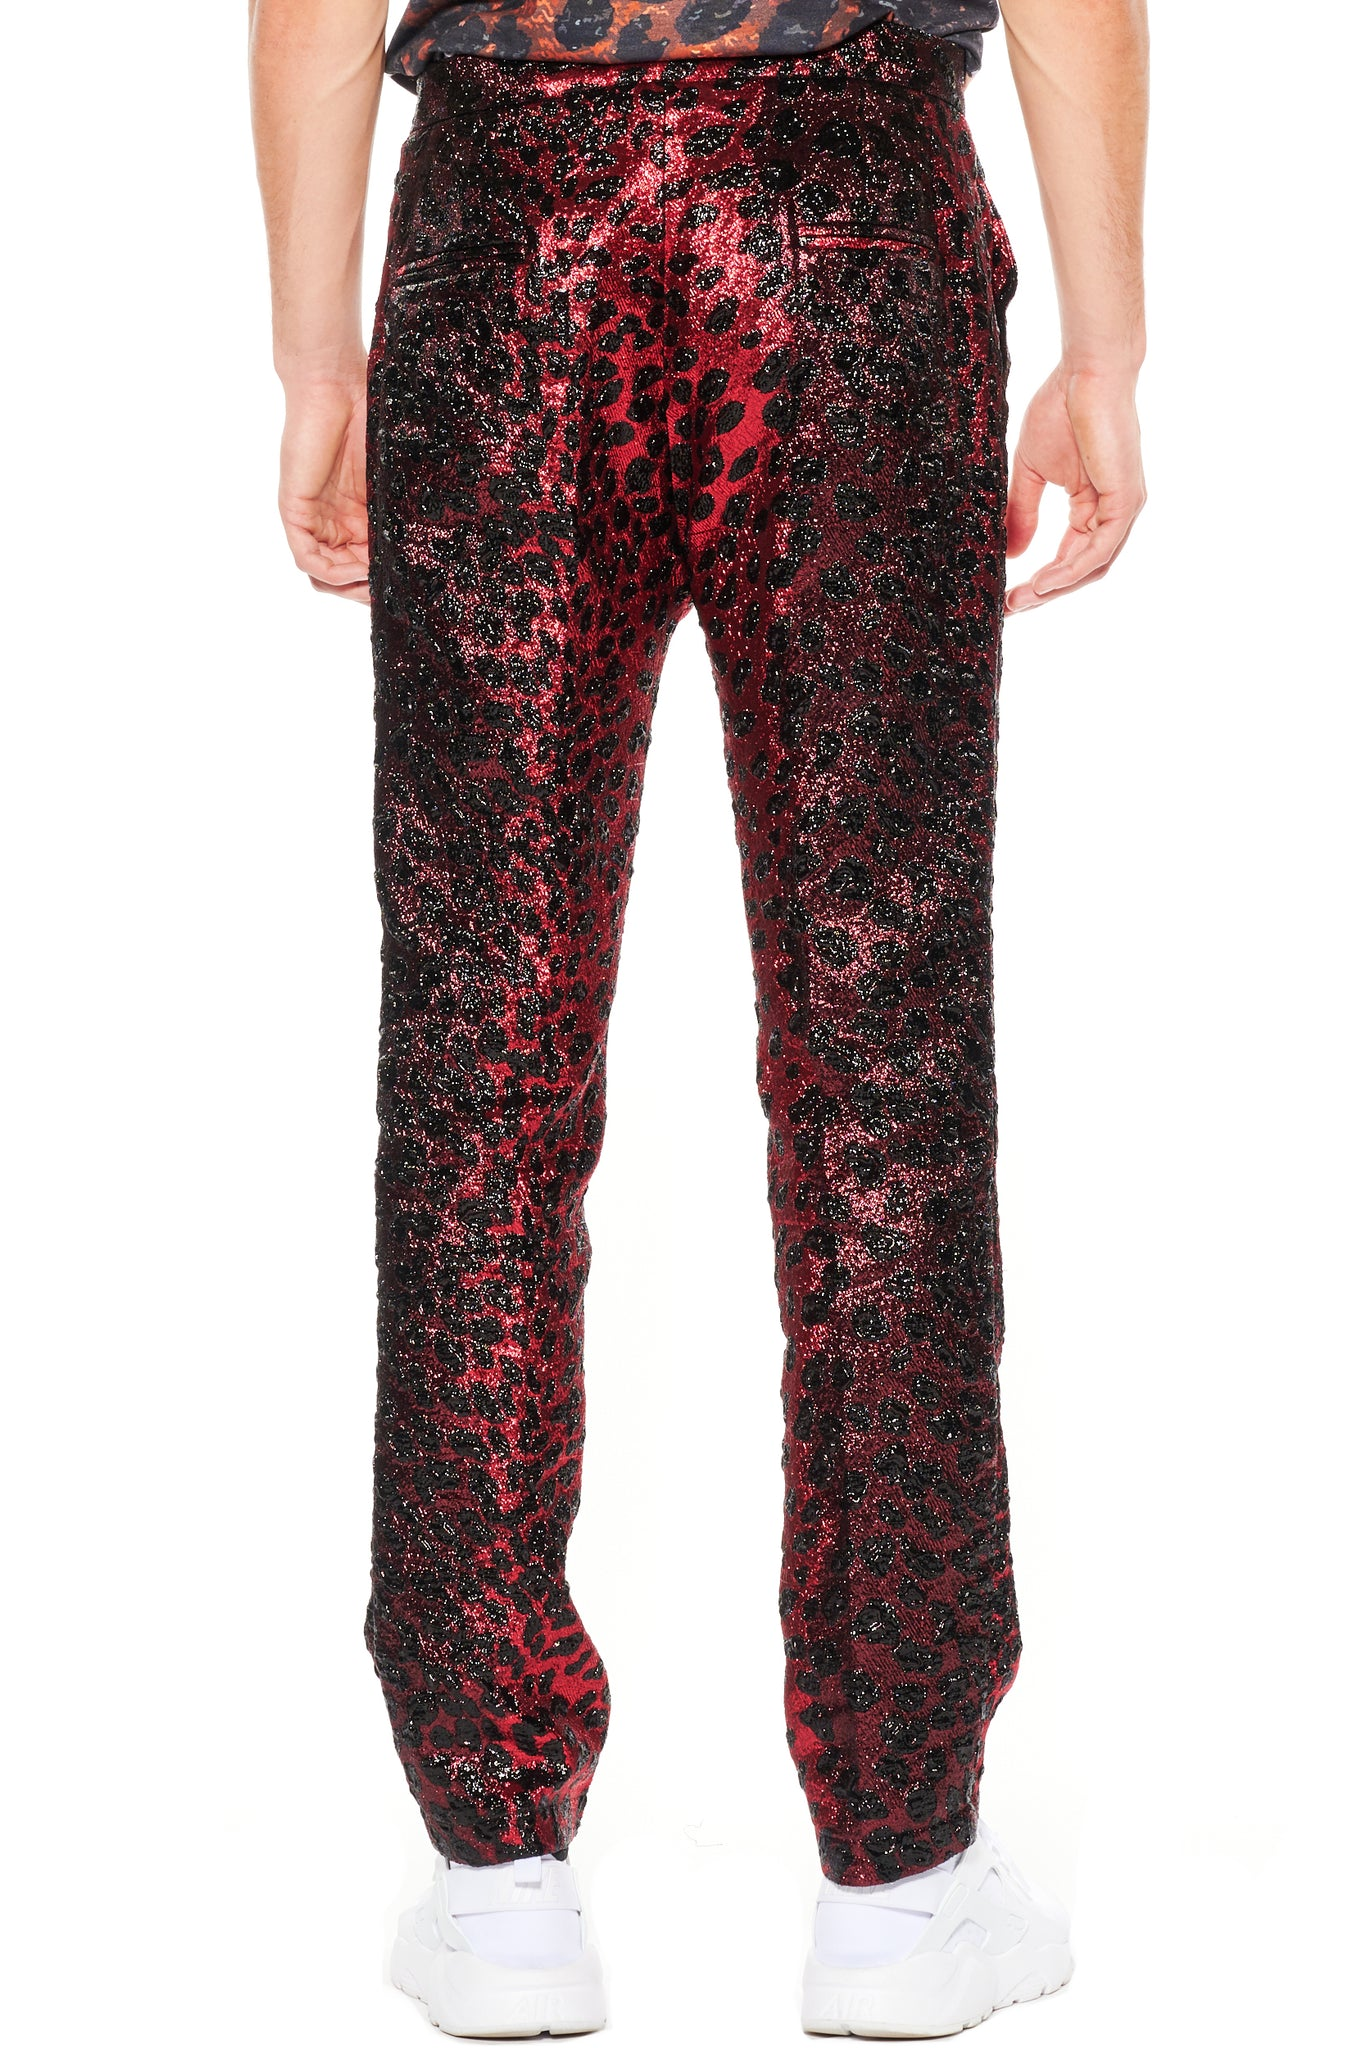 'NIGHT LEOPARD' TROUSERS - Web Exclusives - Libertine